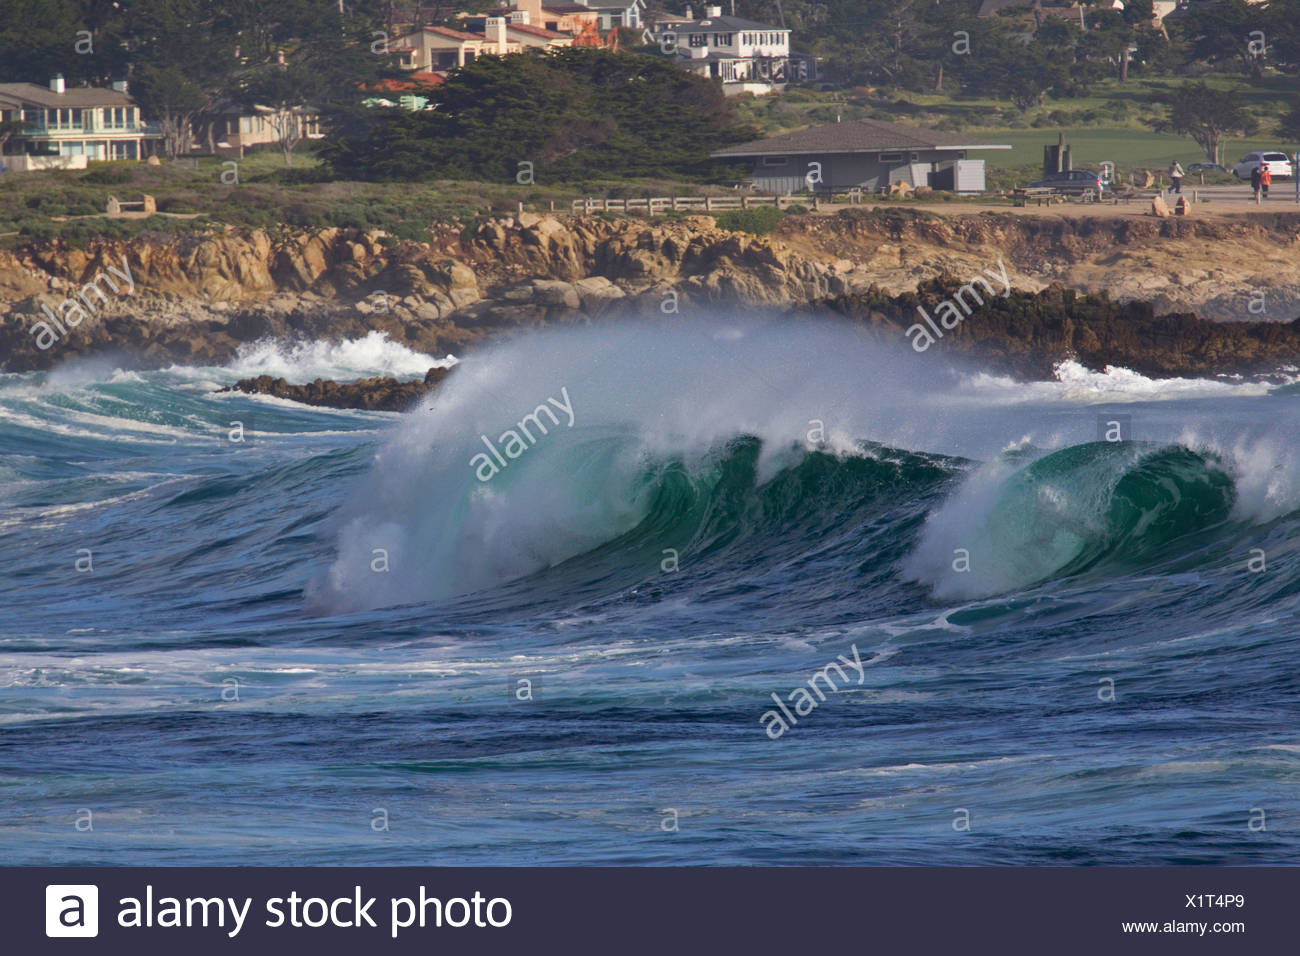 Spectacular breaking wave along the 17 mile drive, Monterey Bay, Central California, USA - Stock Image